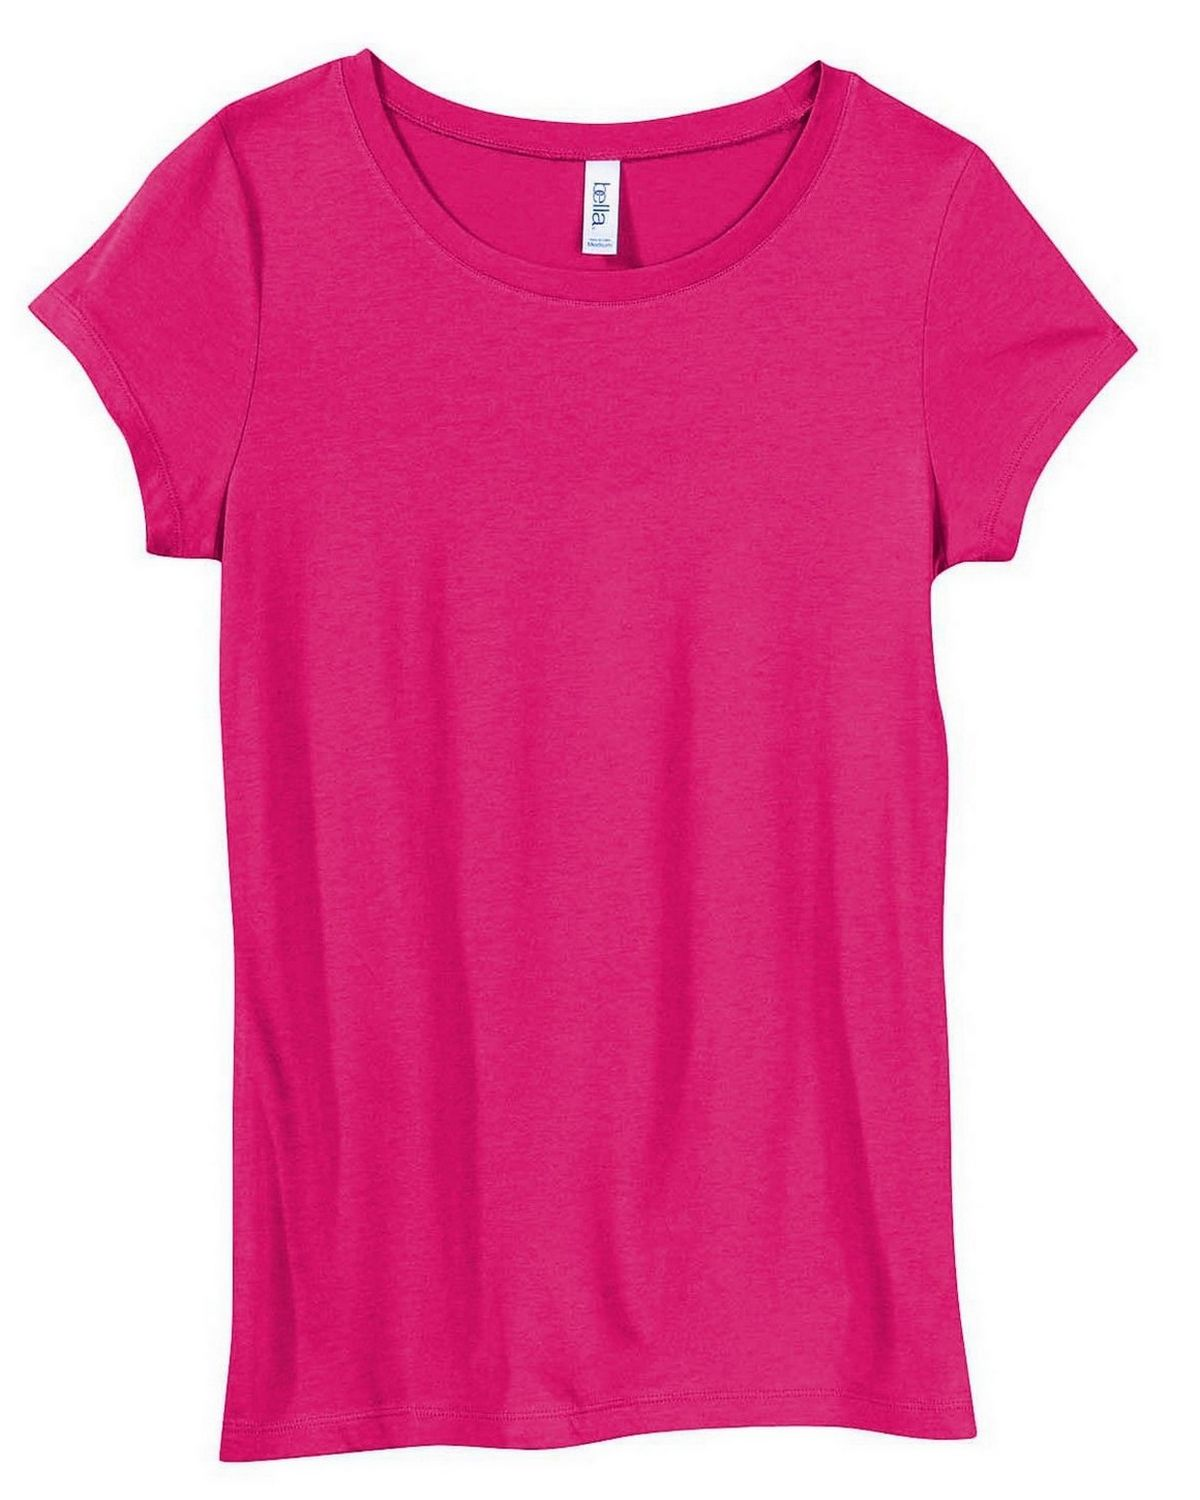 Bella + Canvas B8101 Ladies Marcelle Jersey T-Shirt - Berry - XL B8101